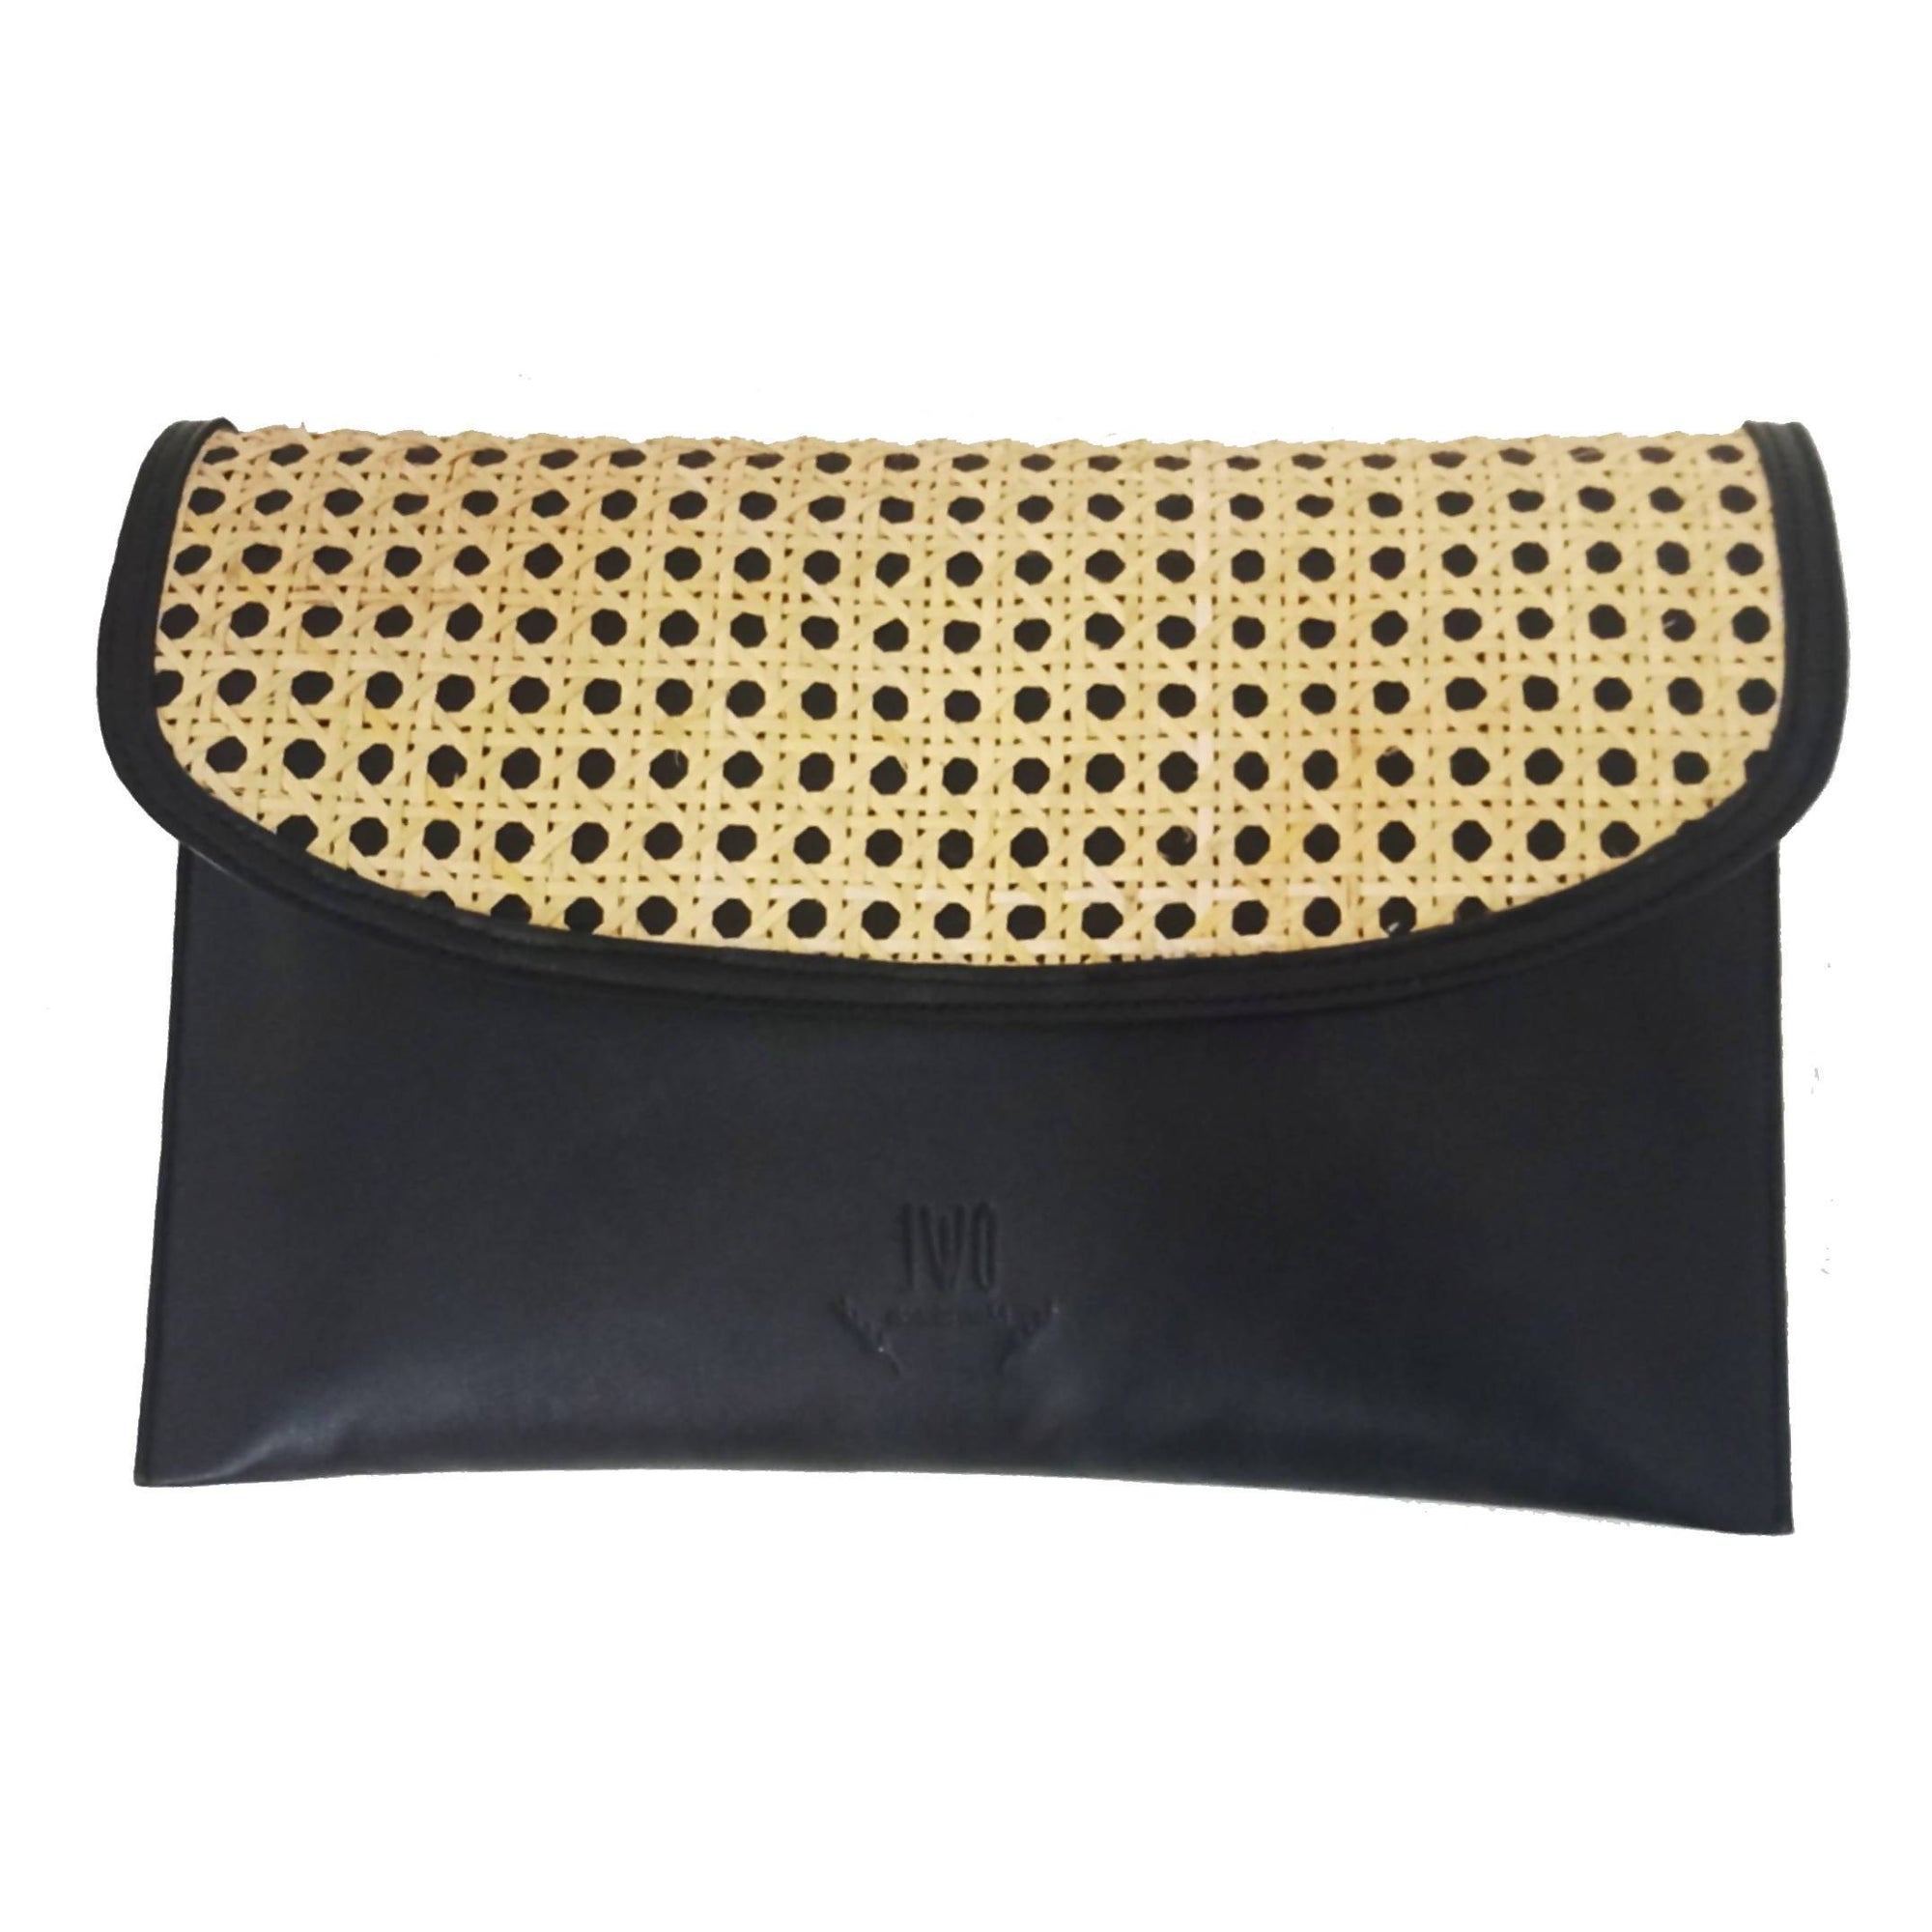 Canning Leather Clutch #2054